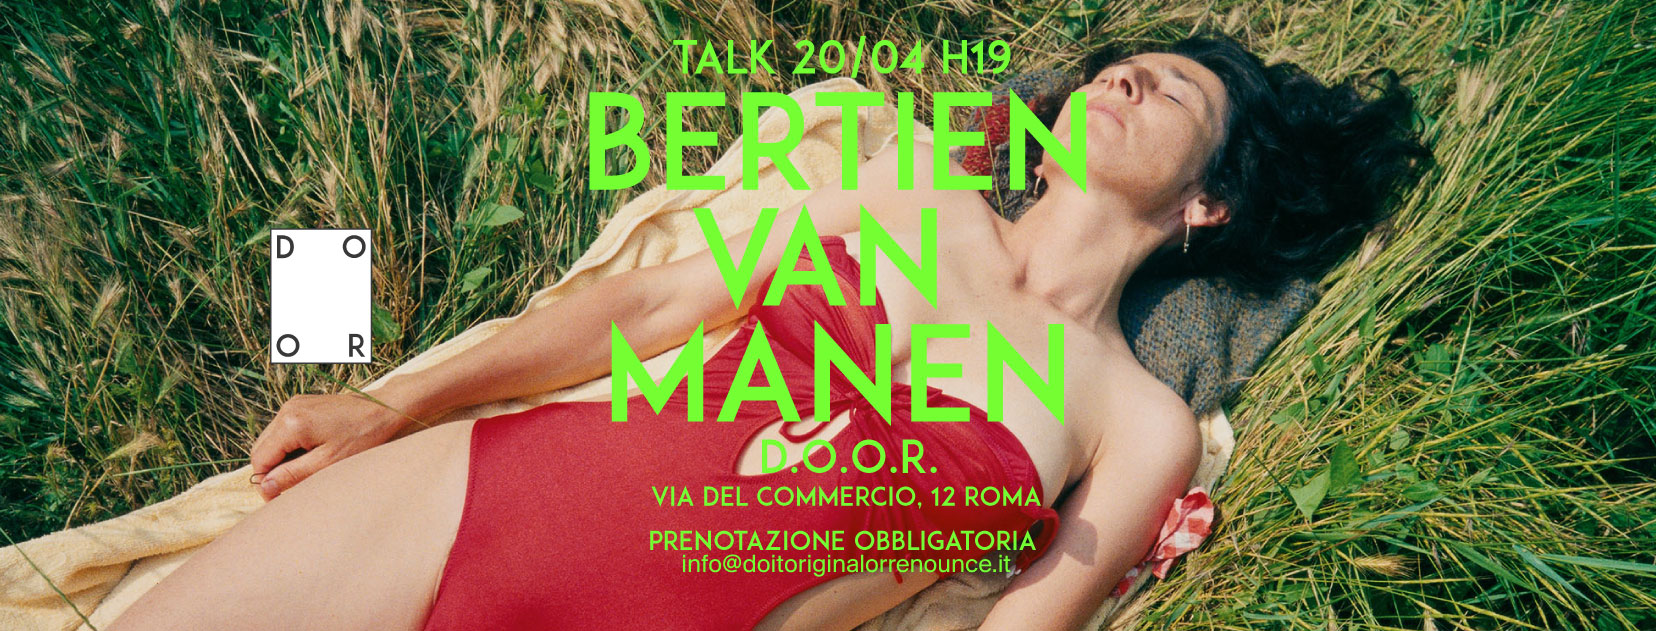 A TALK WITH BERTIEN VAN MANEN